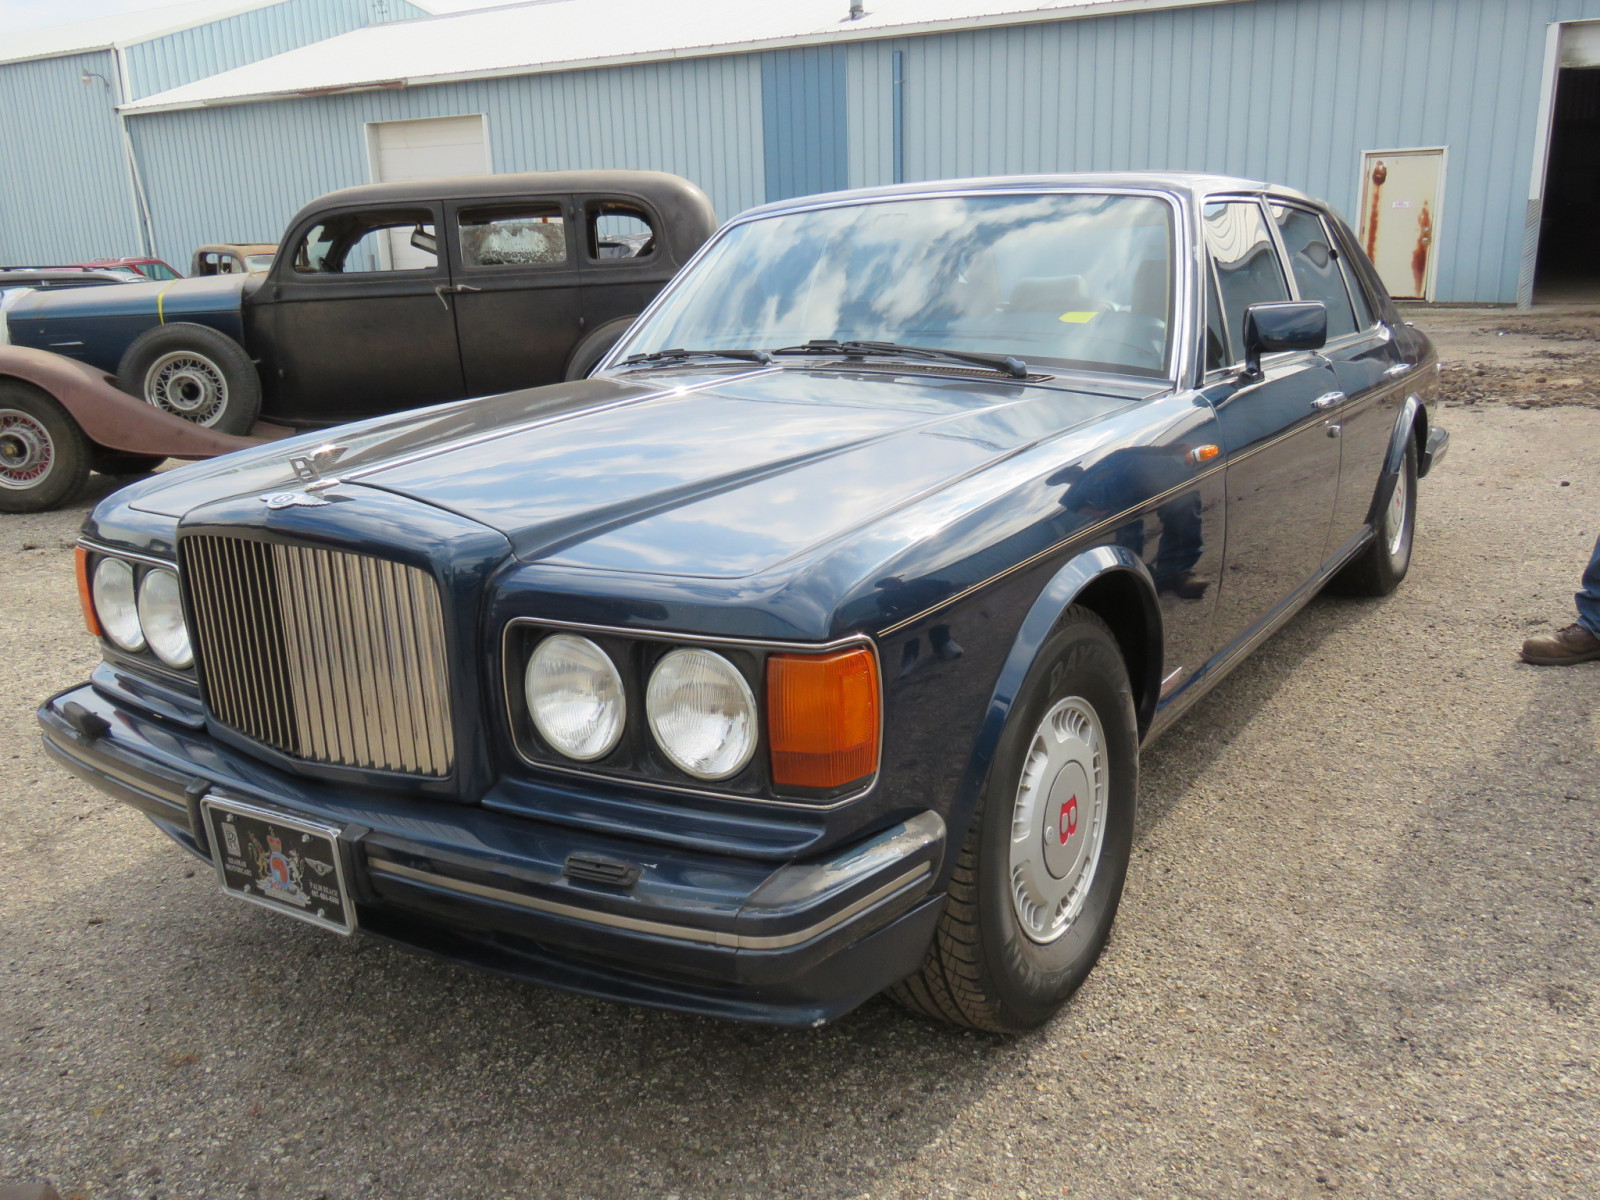 1988 Bentley Turbo R 4dr Sedan - Image 1